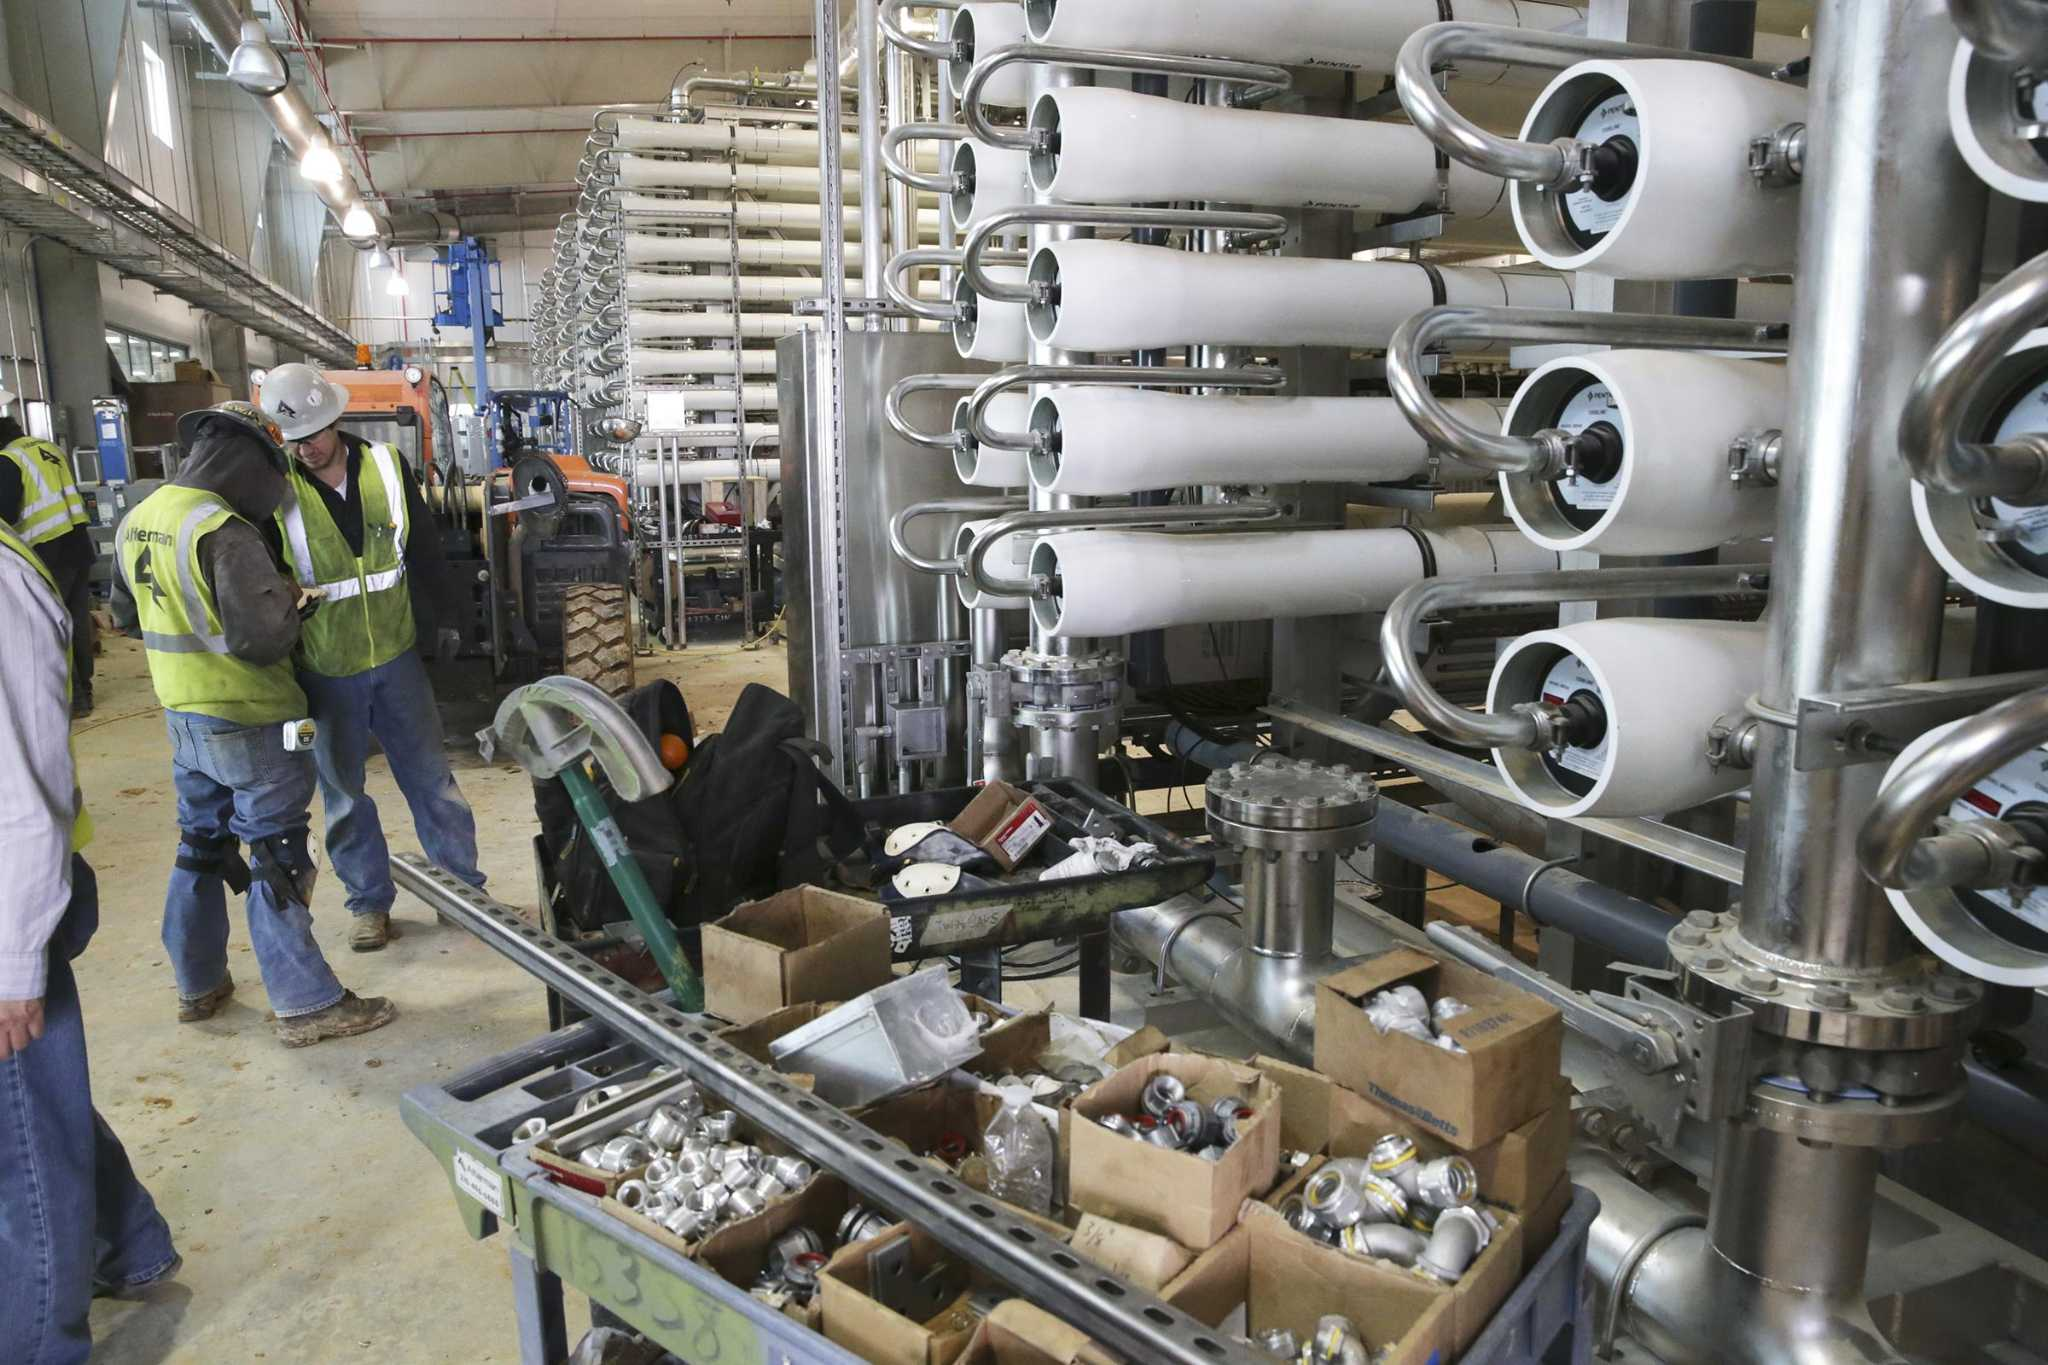 SAWS offers look inside desalination plant to treat salty